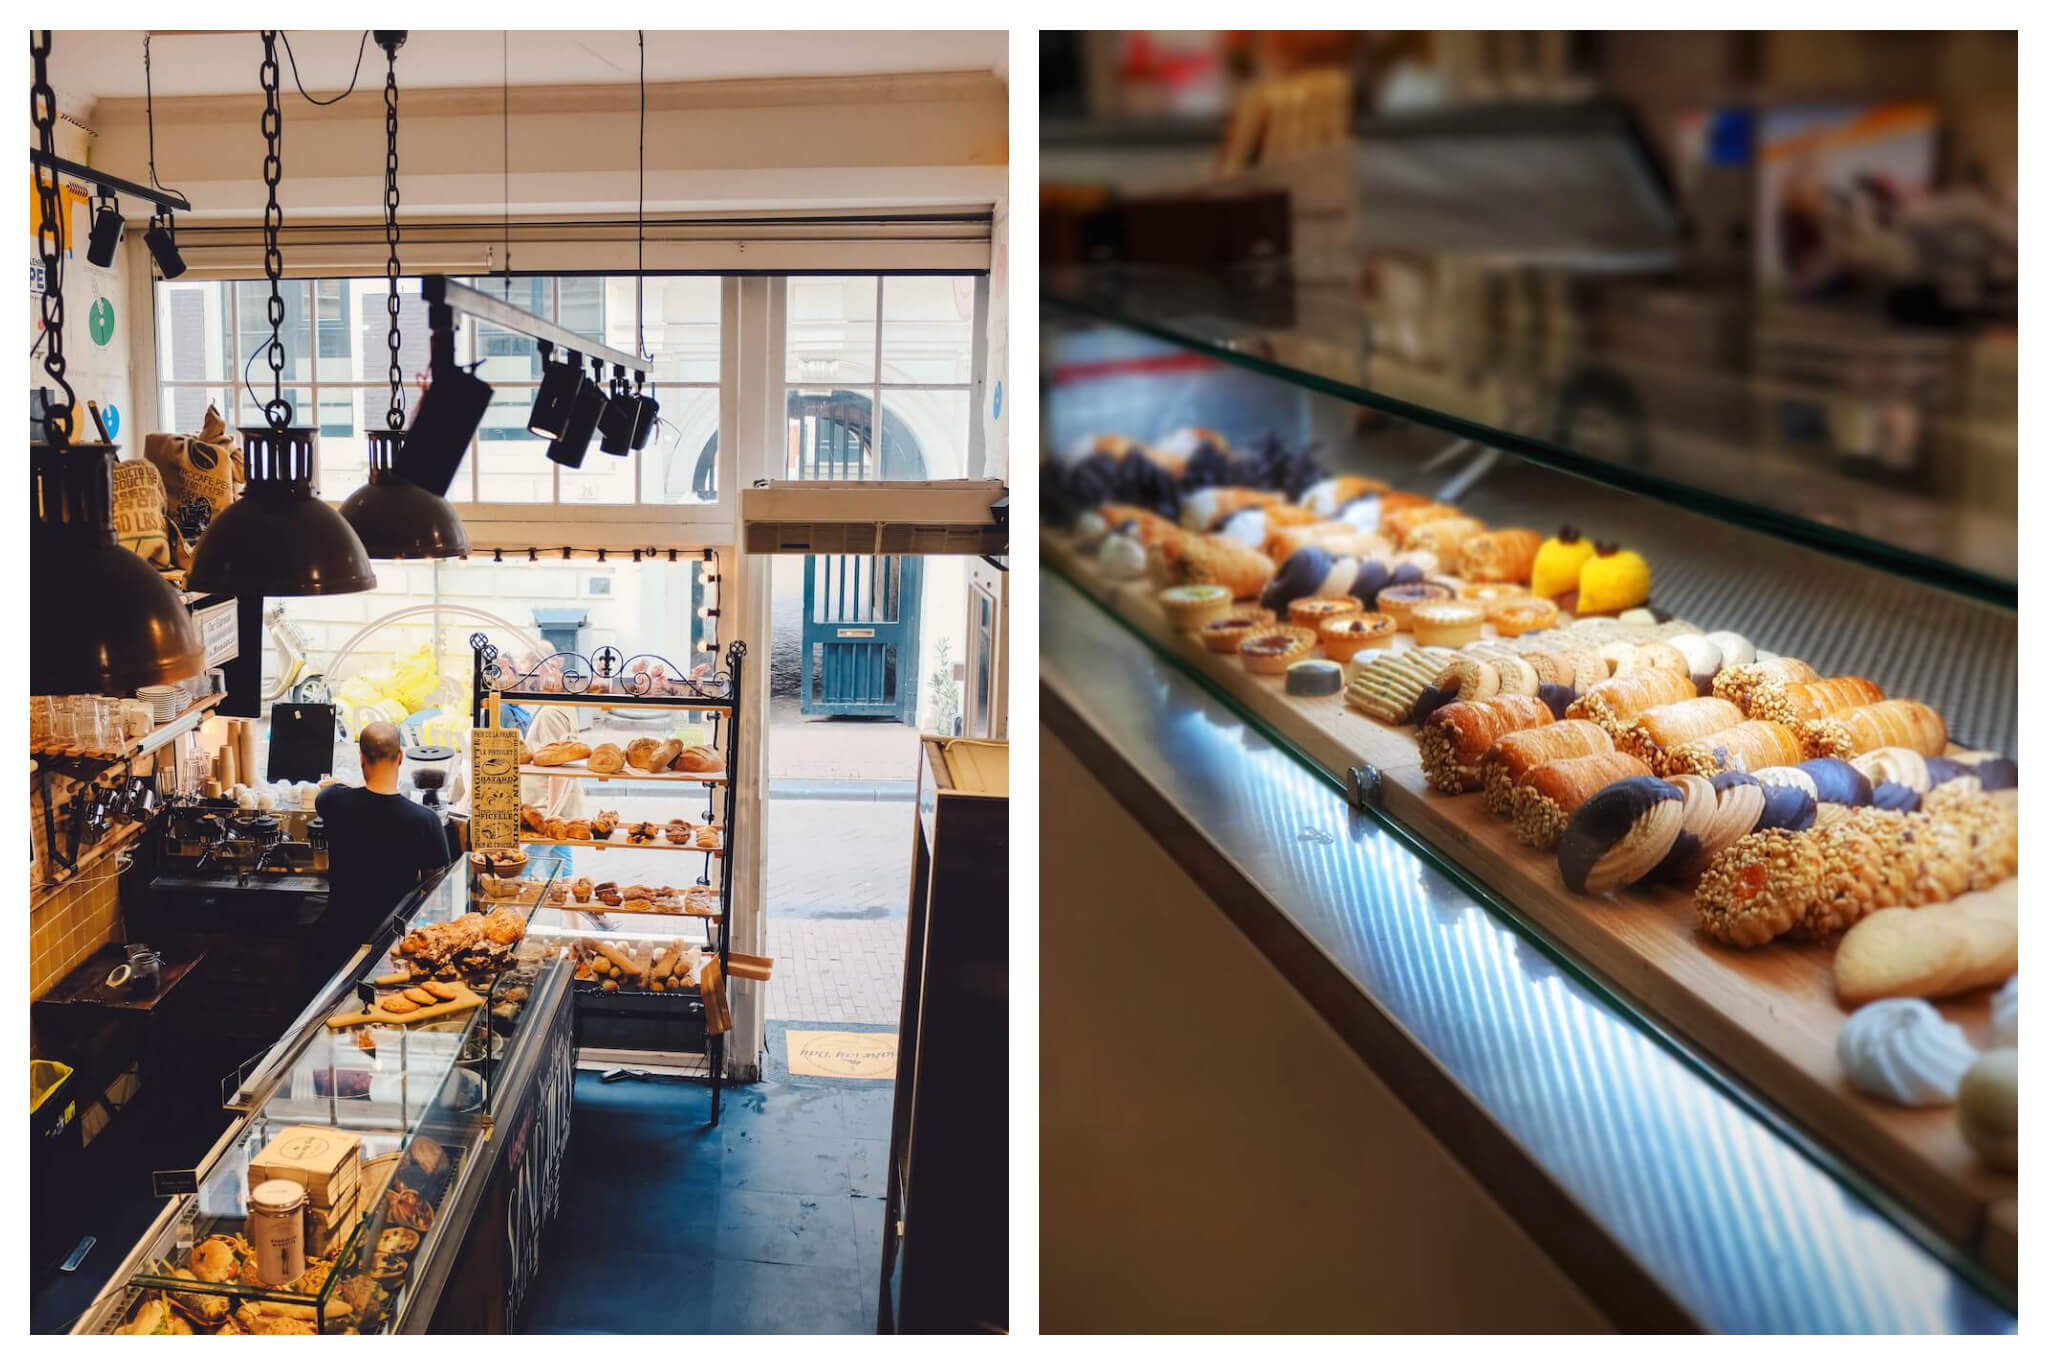 Left: On overhead view of the inside of a bakery from the inside looking out, baked goods and assorted products can be seen in the shop, Right: Fresh baked pastries and desserts lay next to each other under a bright light on a counter.